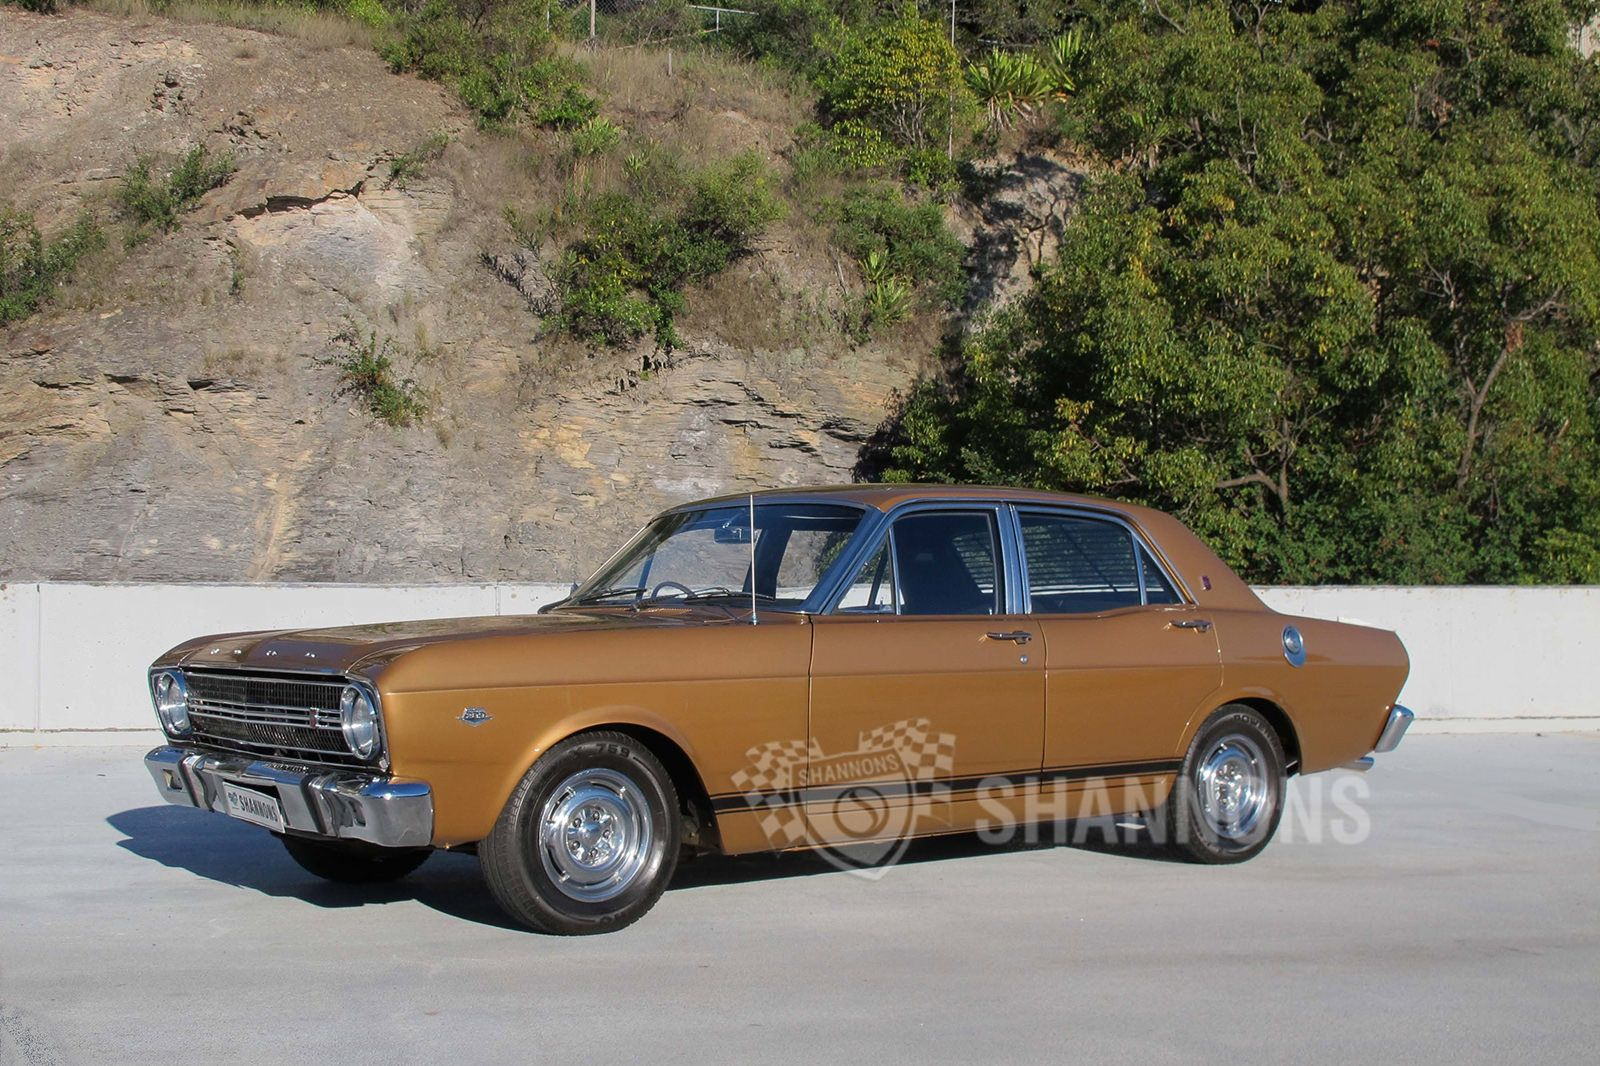 1967 Ford Falcon XR GT Sedan